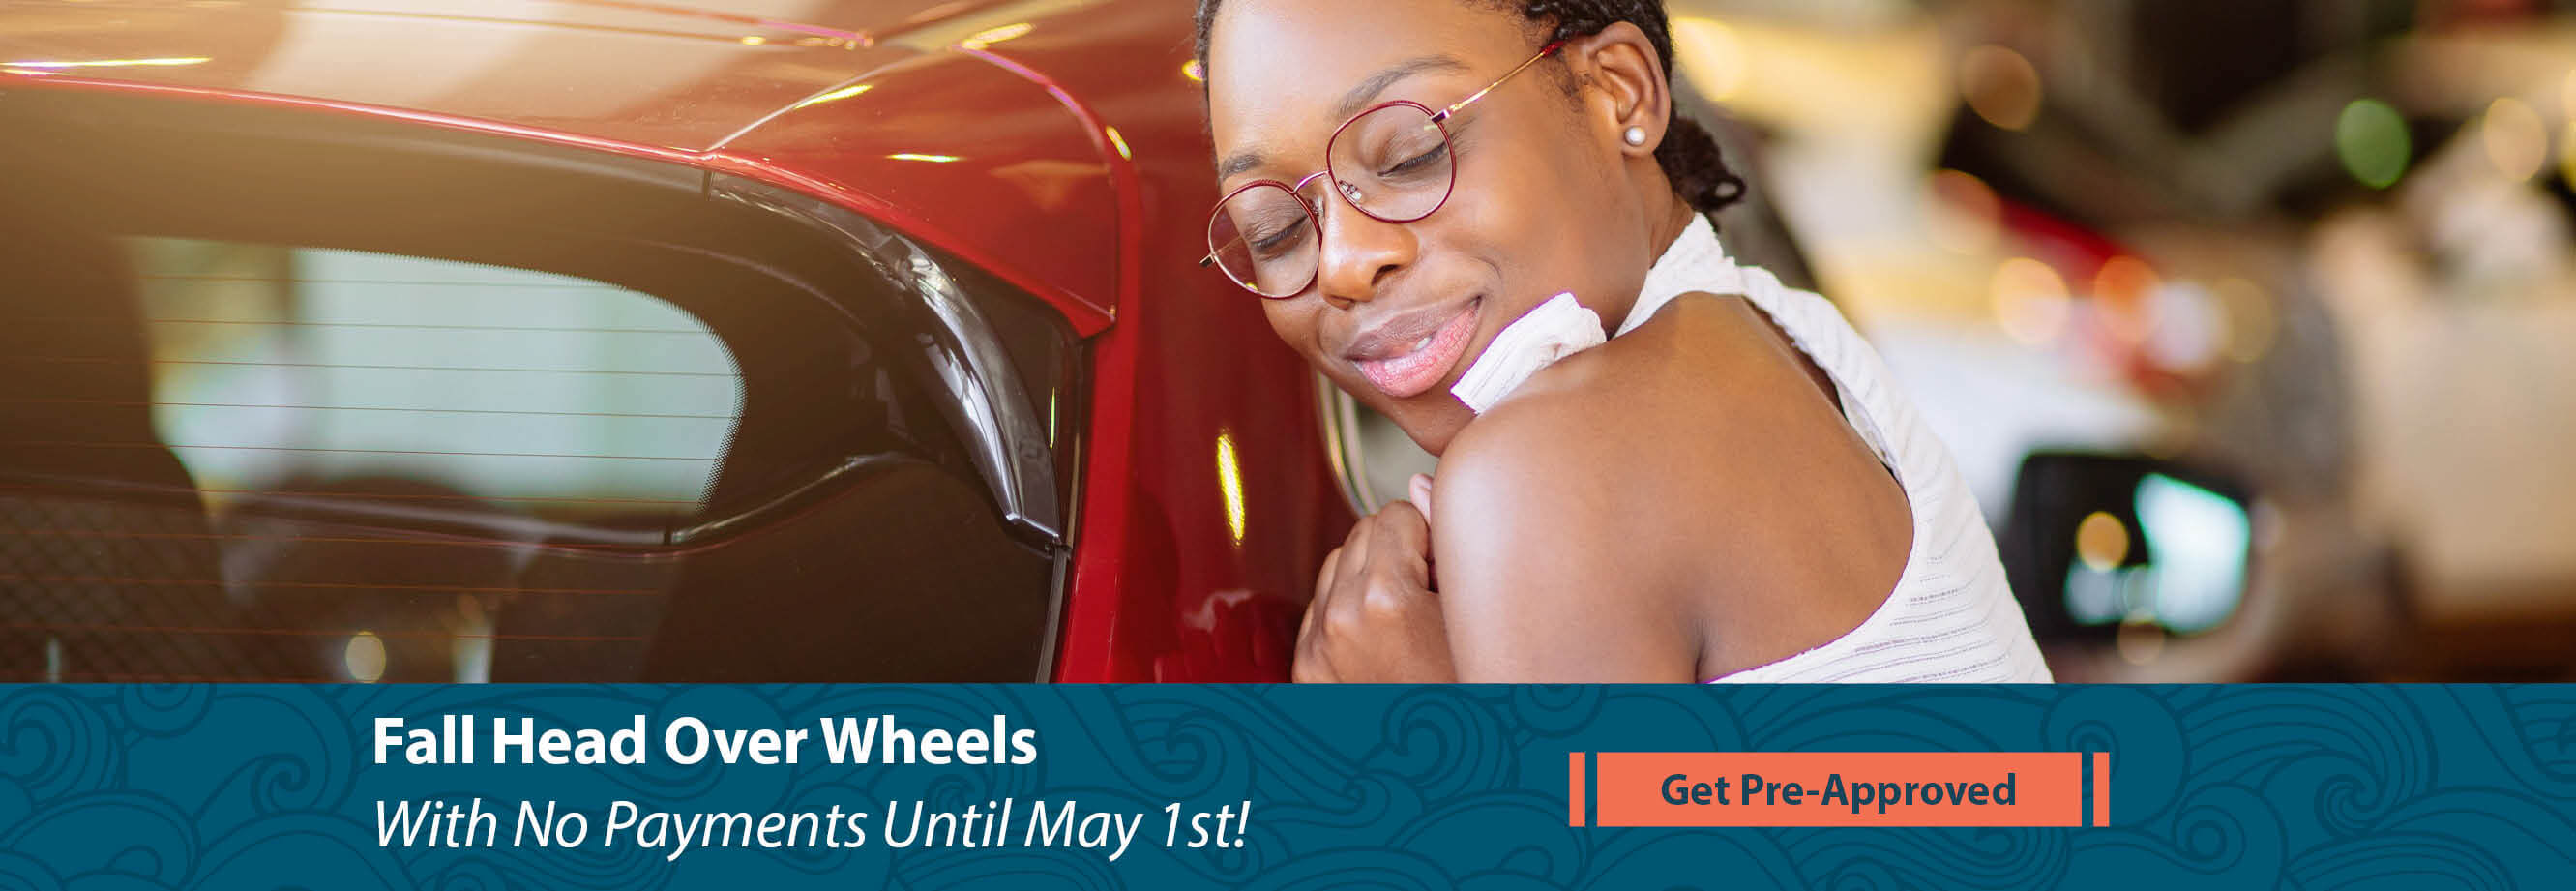 Fall Head Over Wheels with No Payments Until May 1st